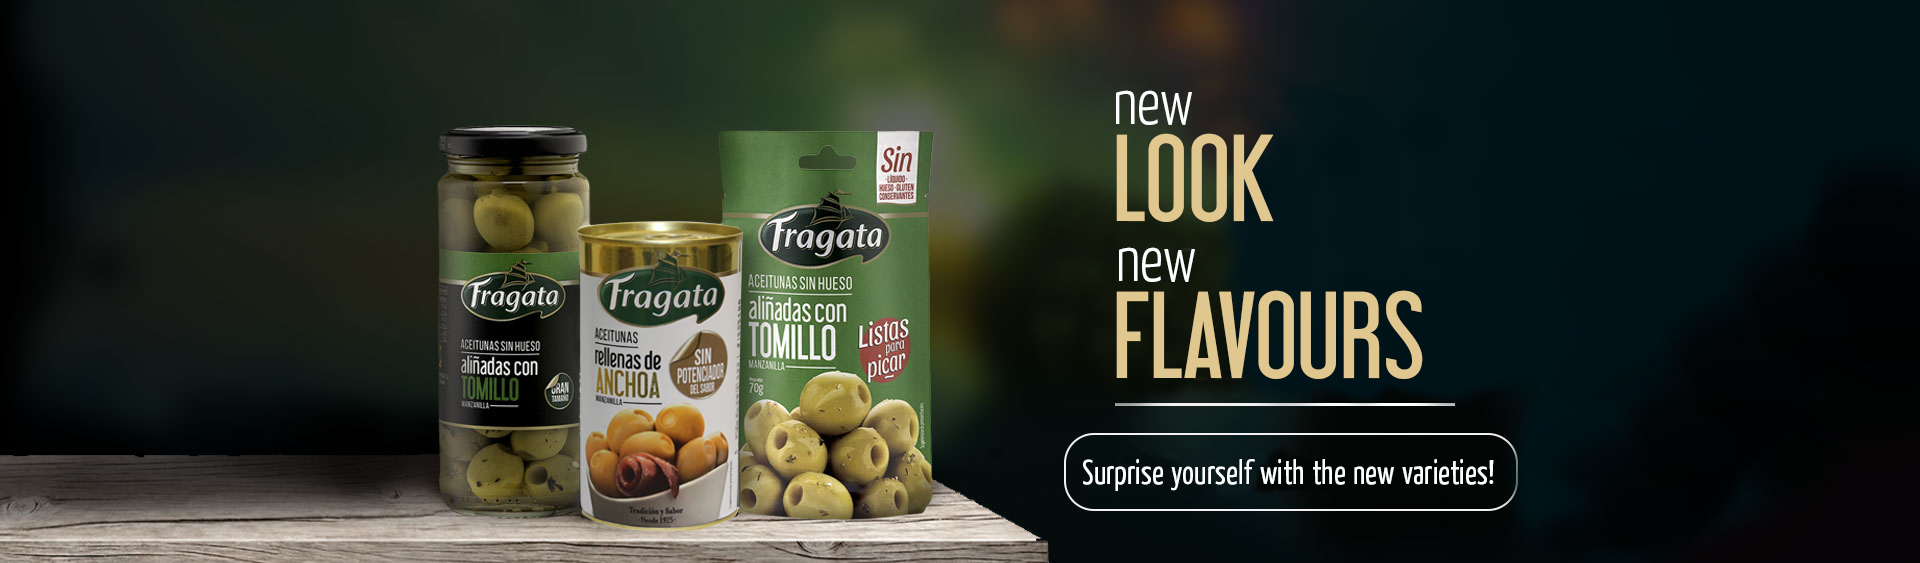 New look, New flavours